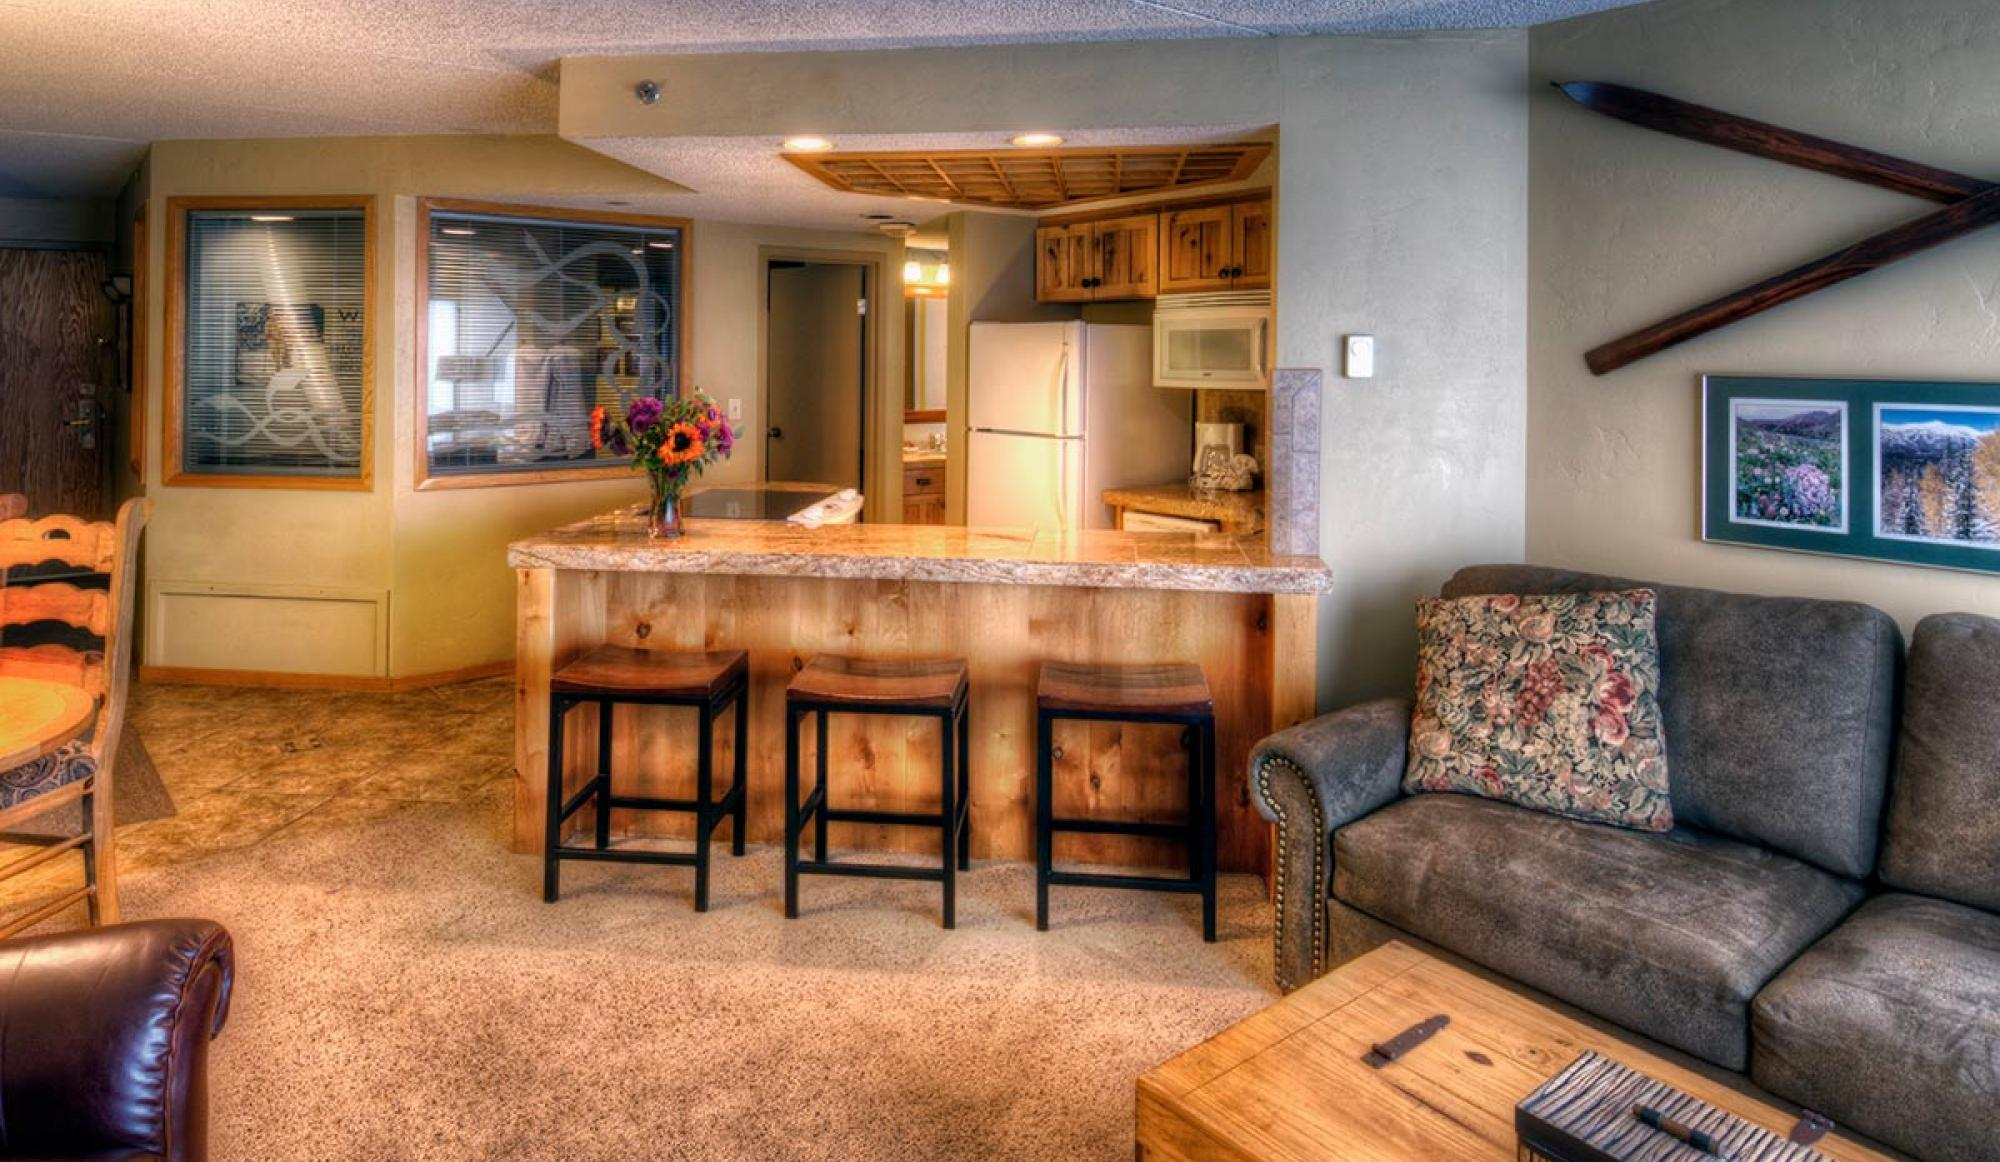 One Bedroom Suite Living Room in Building 4 at Beaver Run Resort in Breckenridge